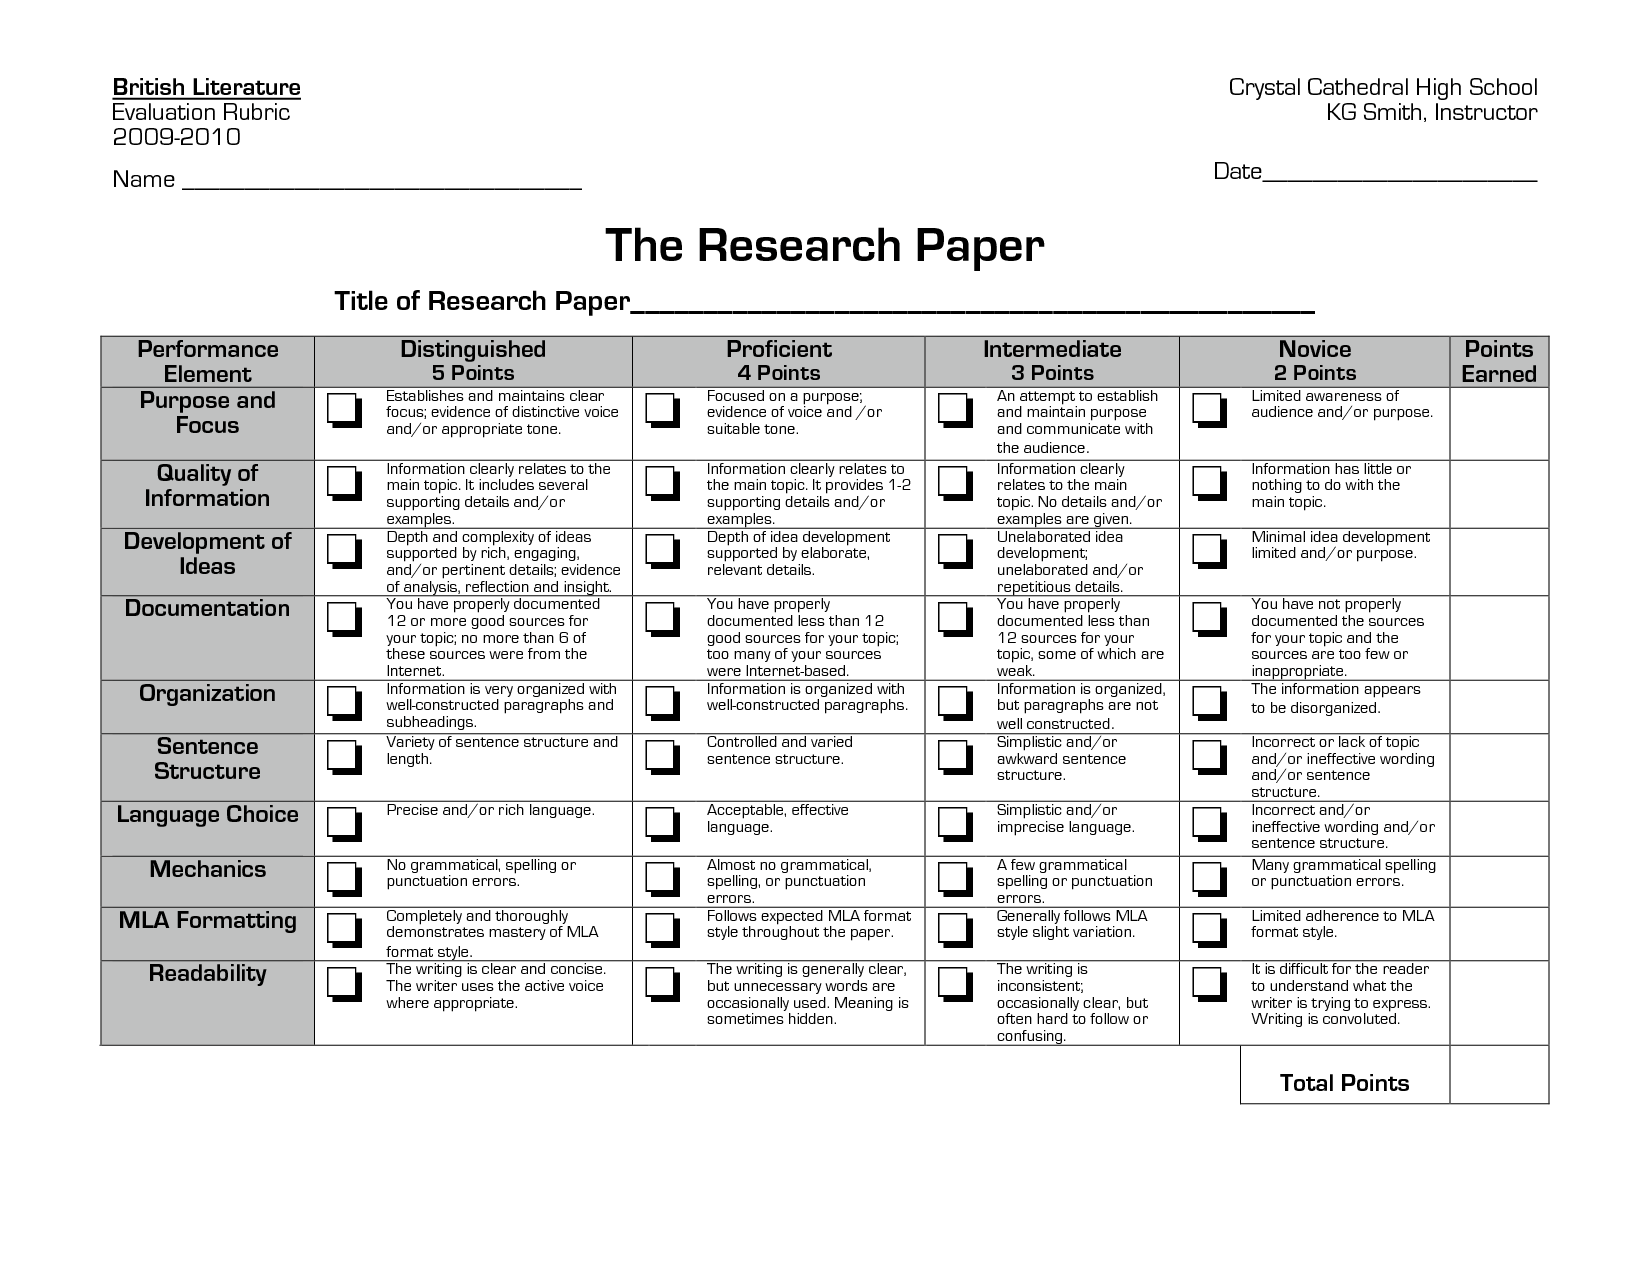 rubric for research paper elementary school